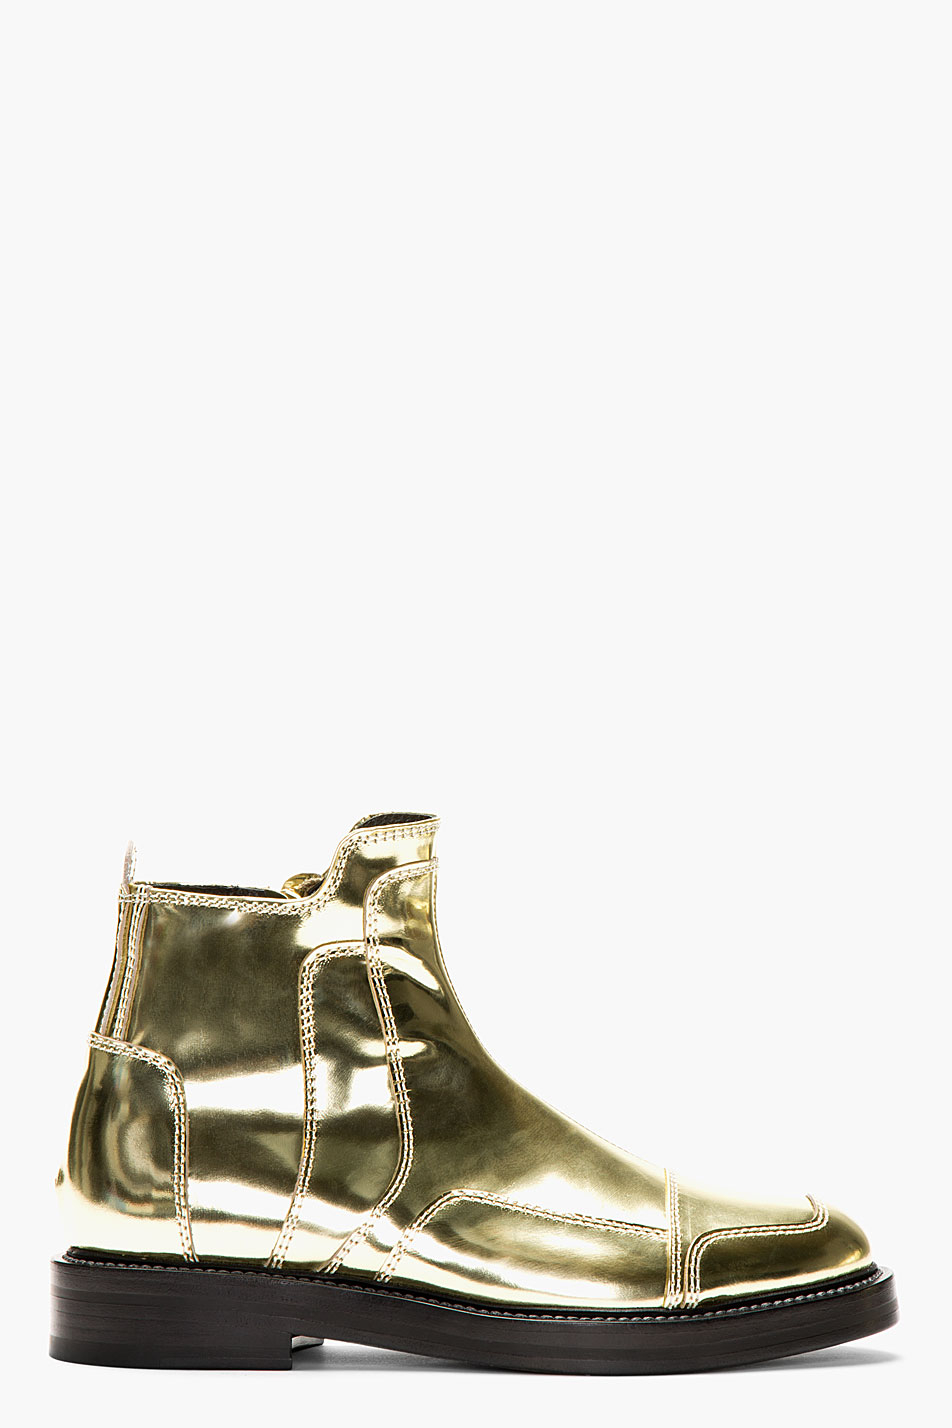 Juunj Metallic Gold Leather Boots In Gold For Men Lyst